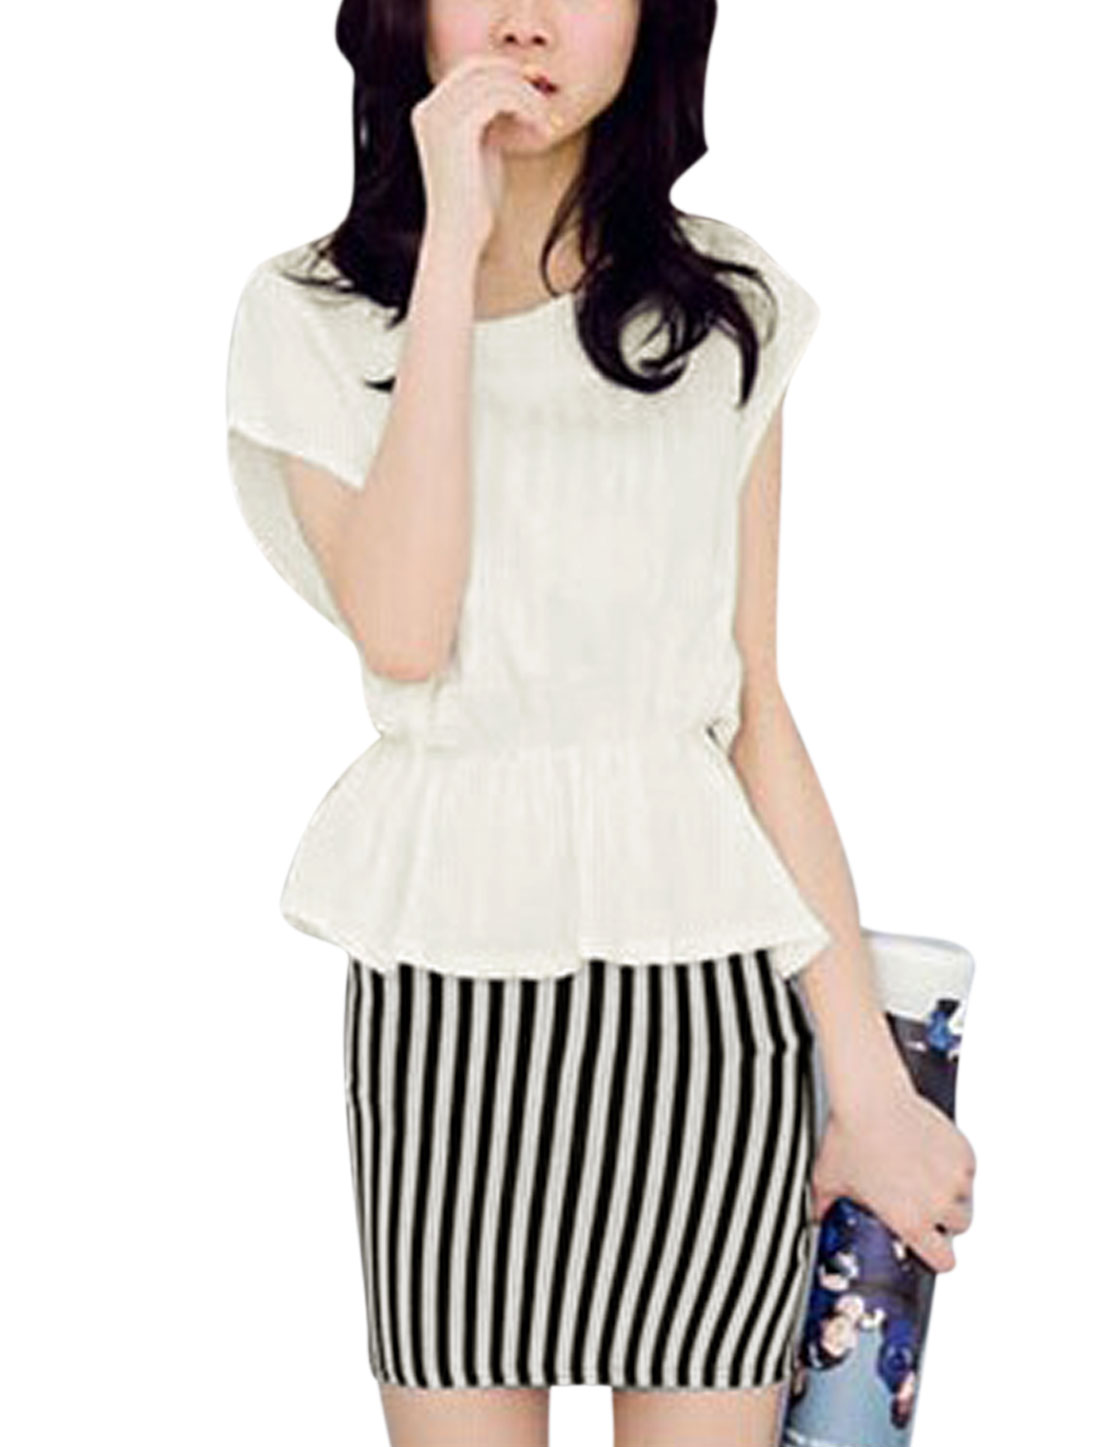 Lady Stripes Slim Fit Dress w Sleeveless Elastic Waist Top White M